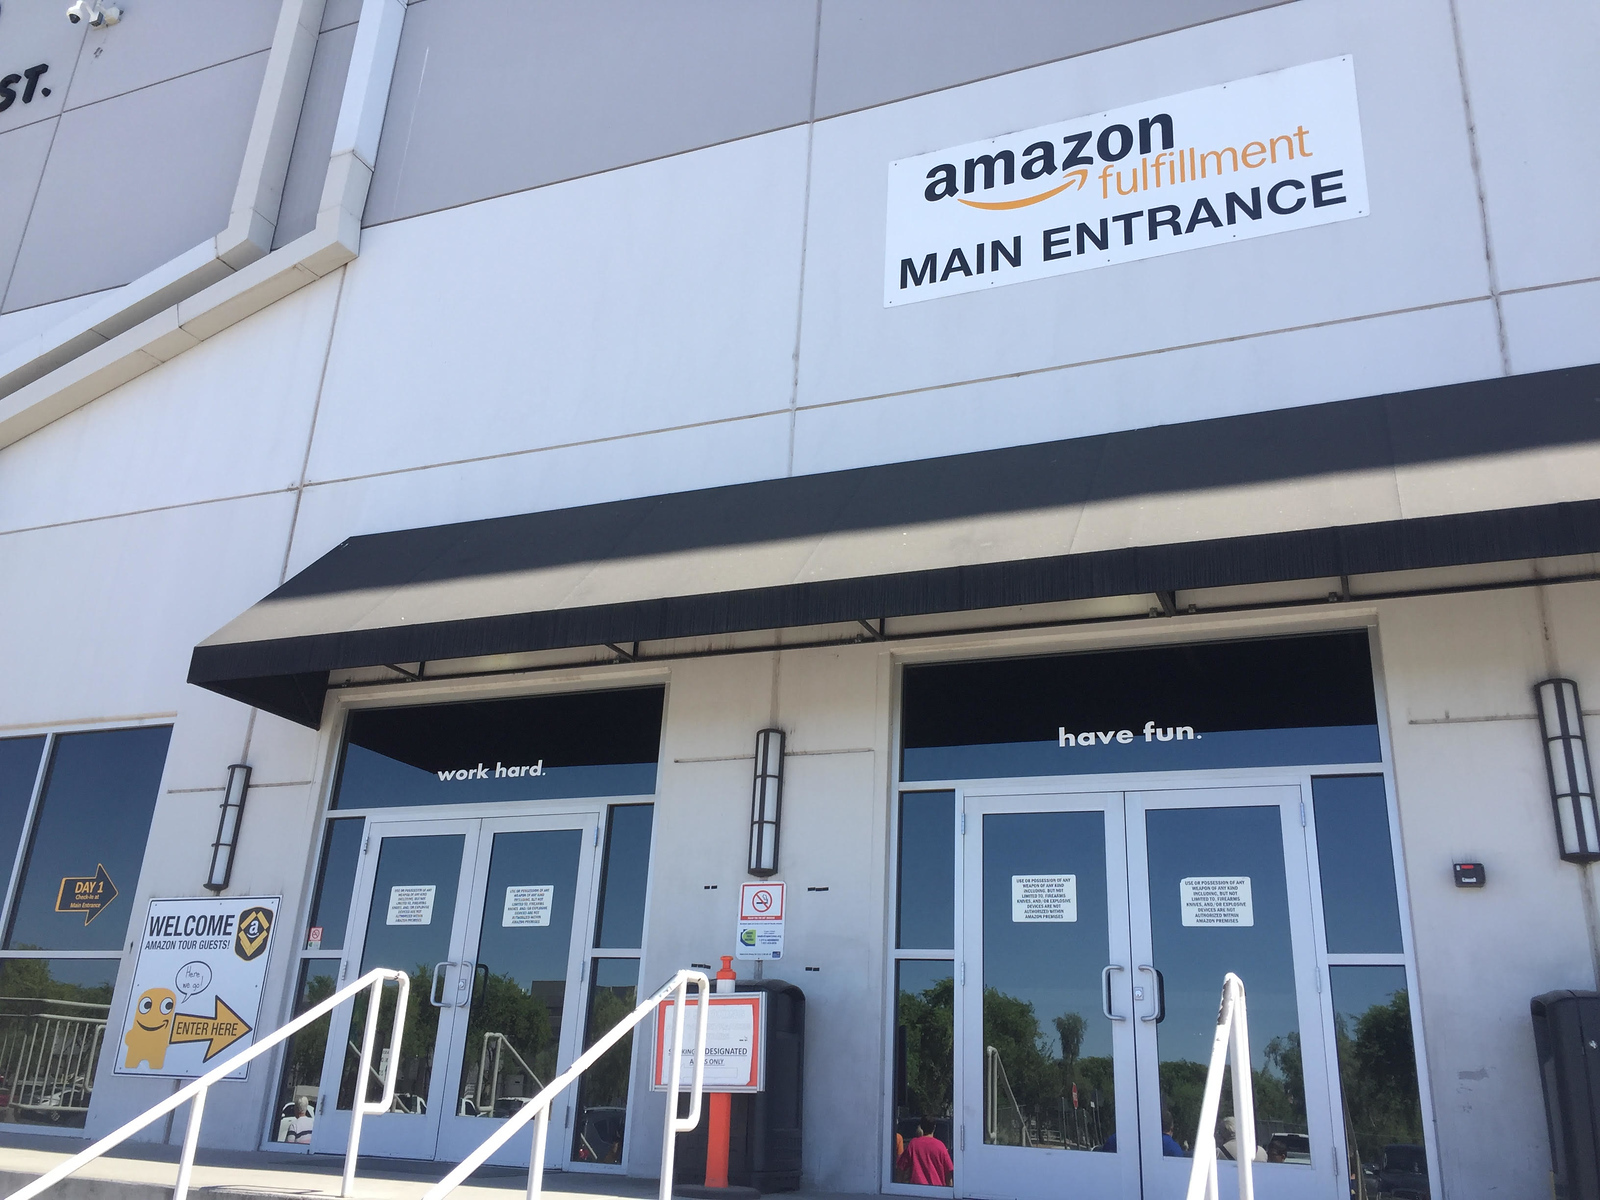 Amazon Main Entrance